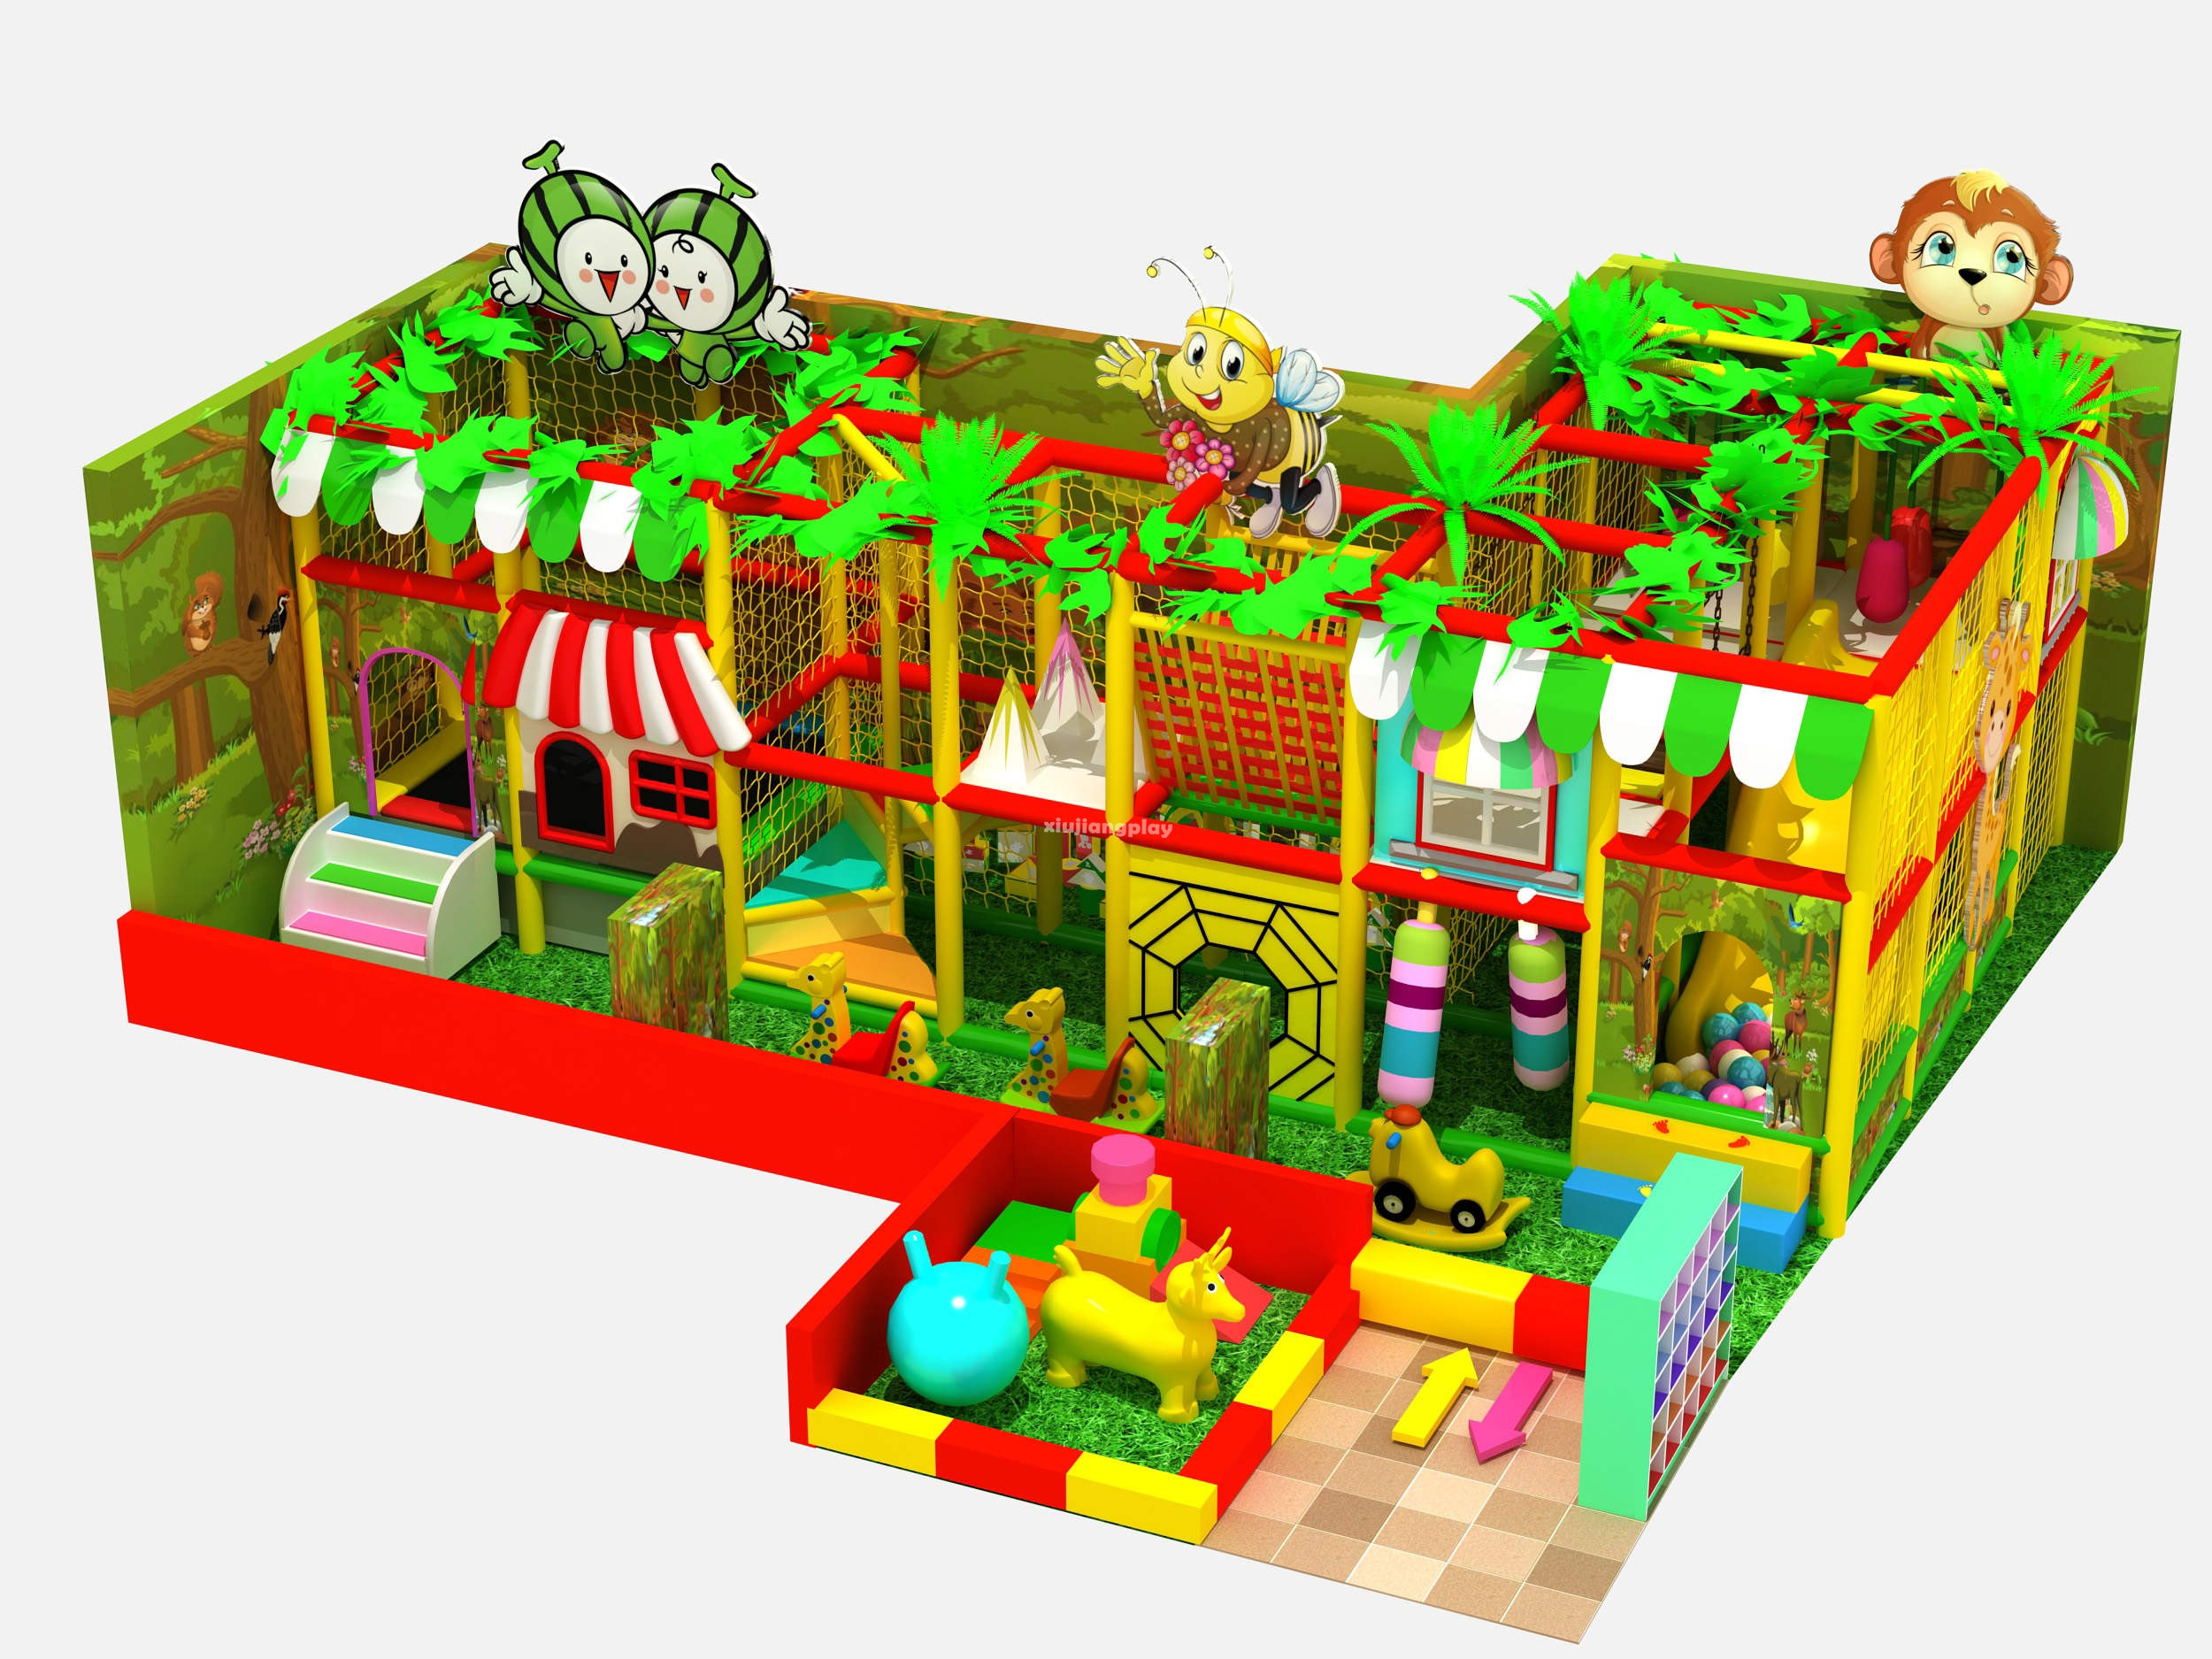 Kiddie Indoor Playground Equipment for Sale